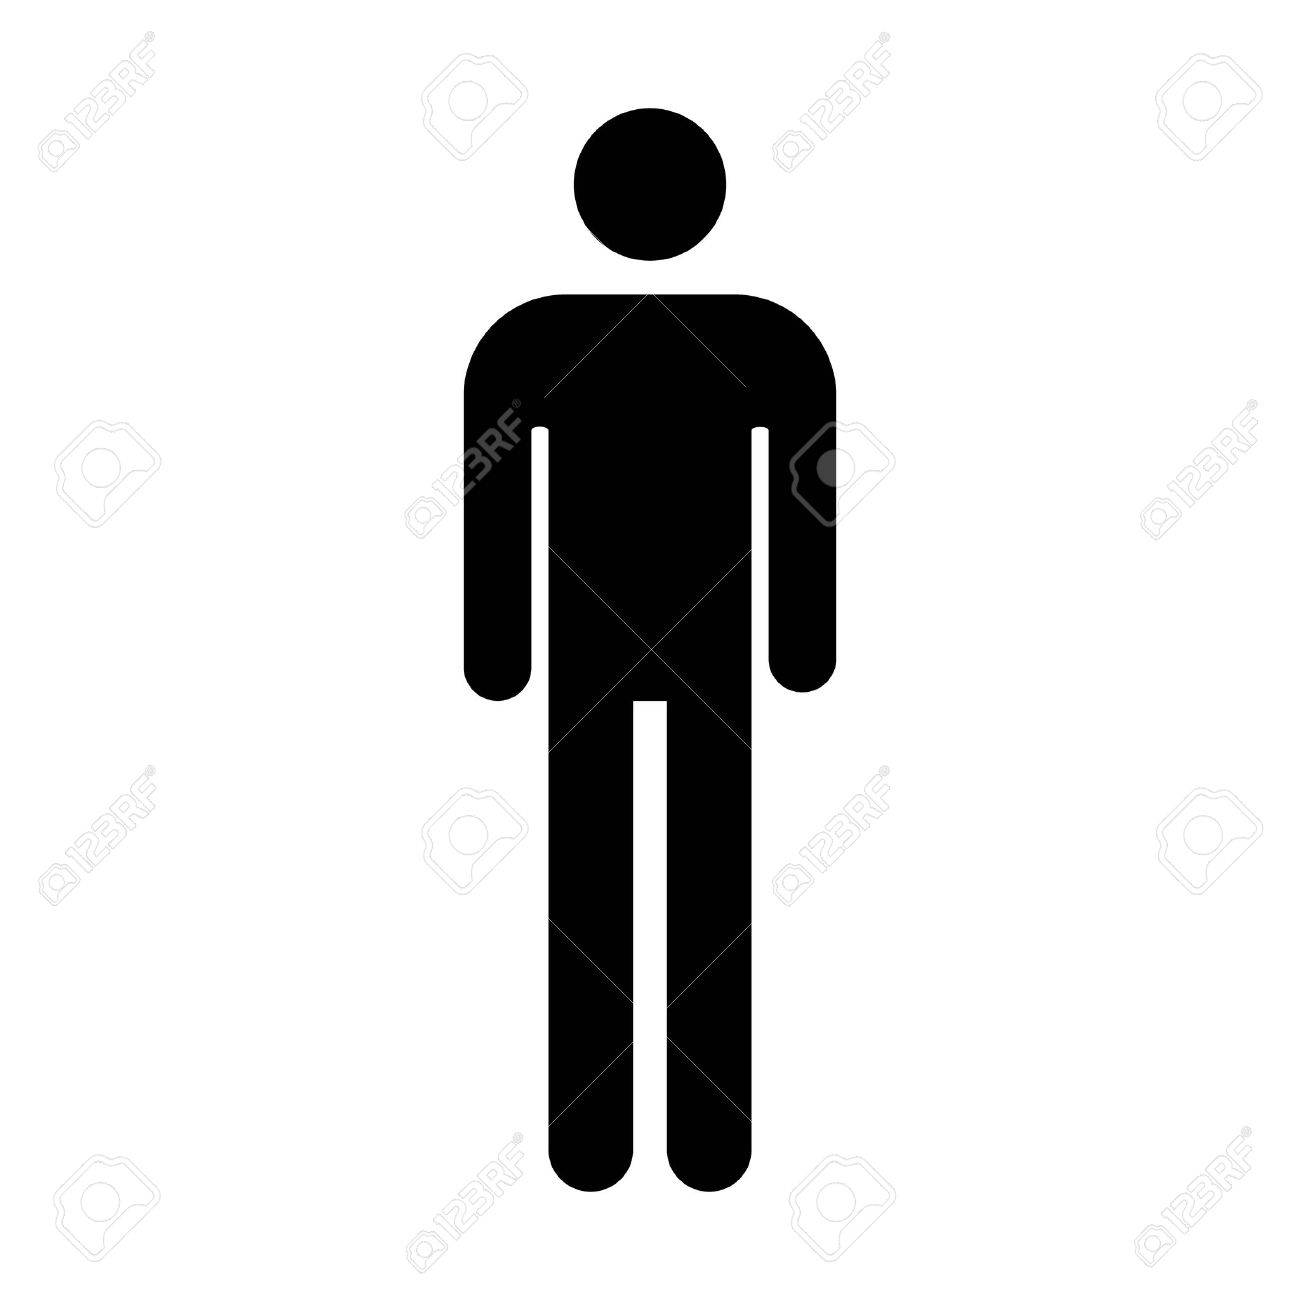 male or men s bathroom restroom sign flat icon for apps and